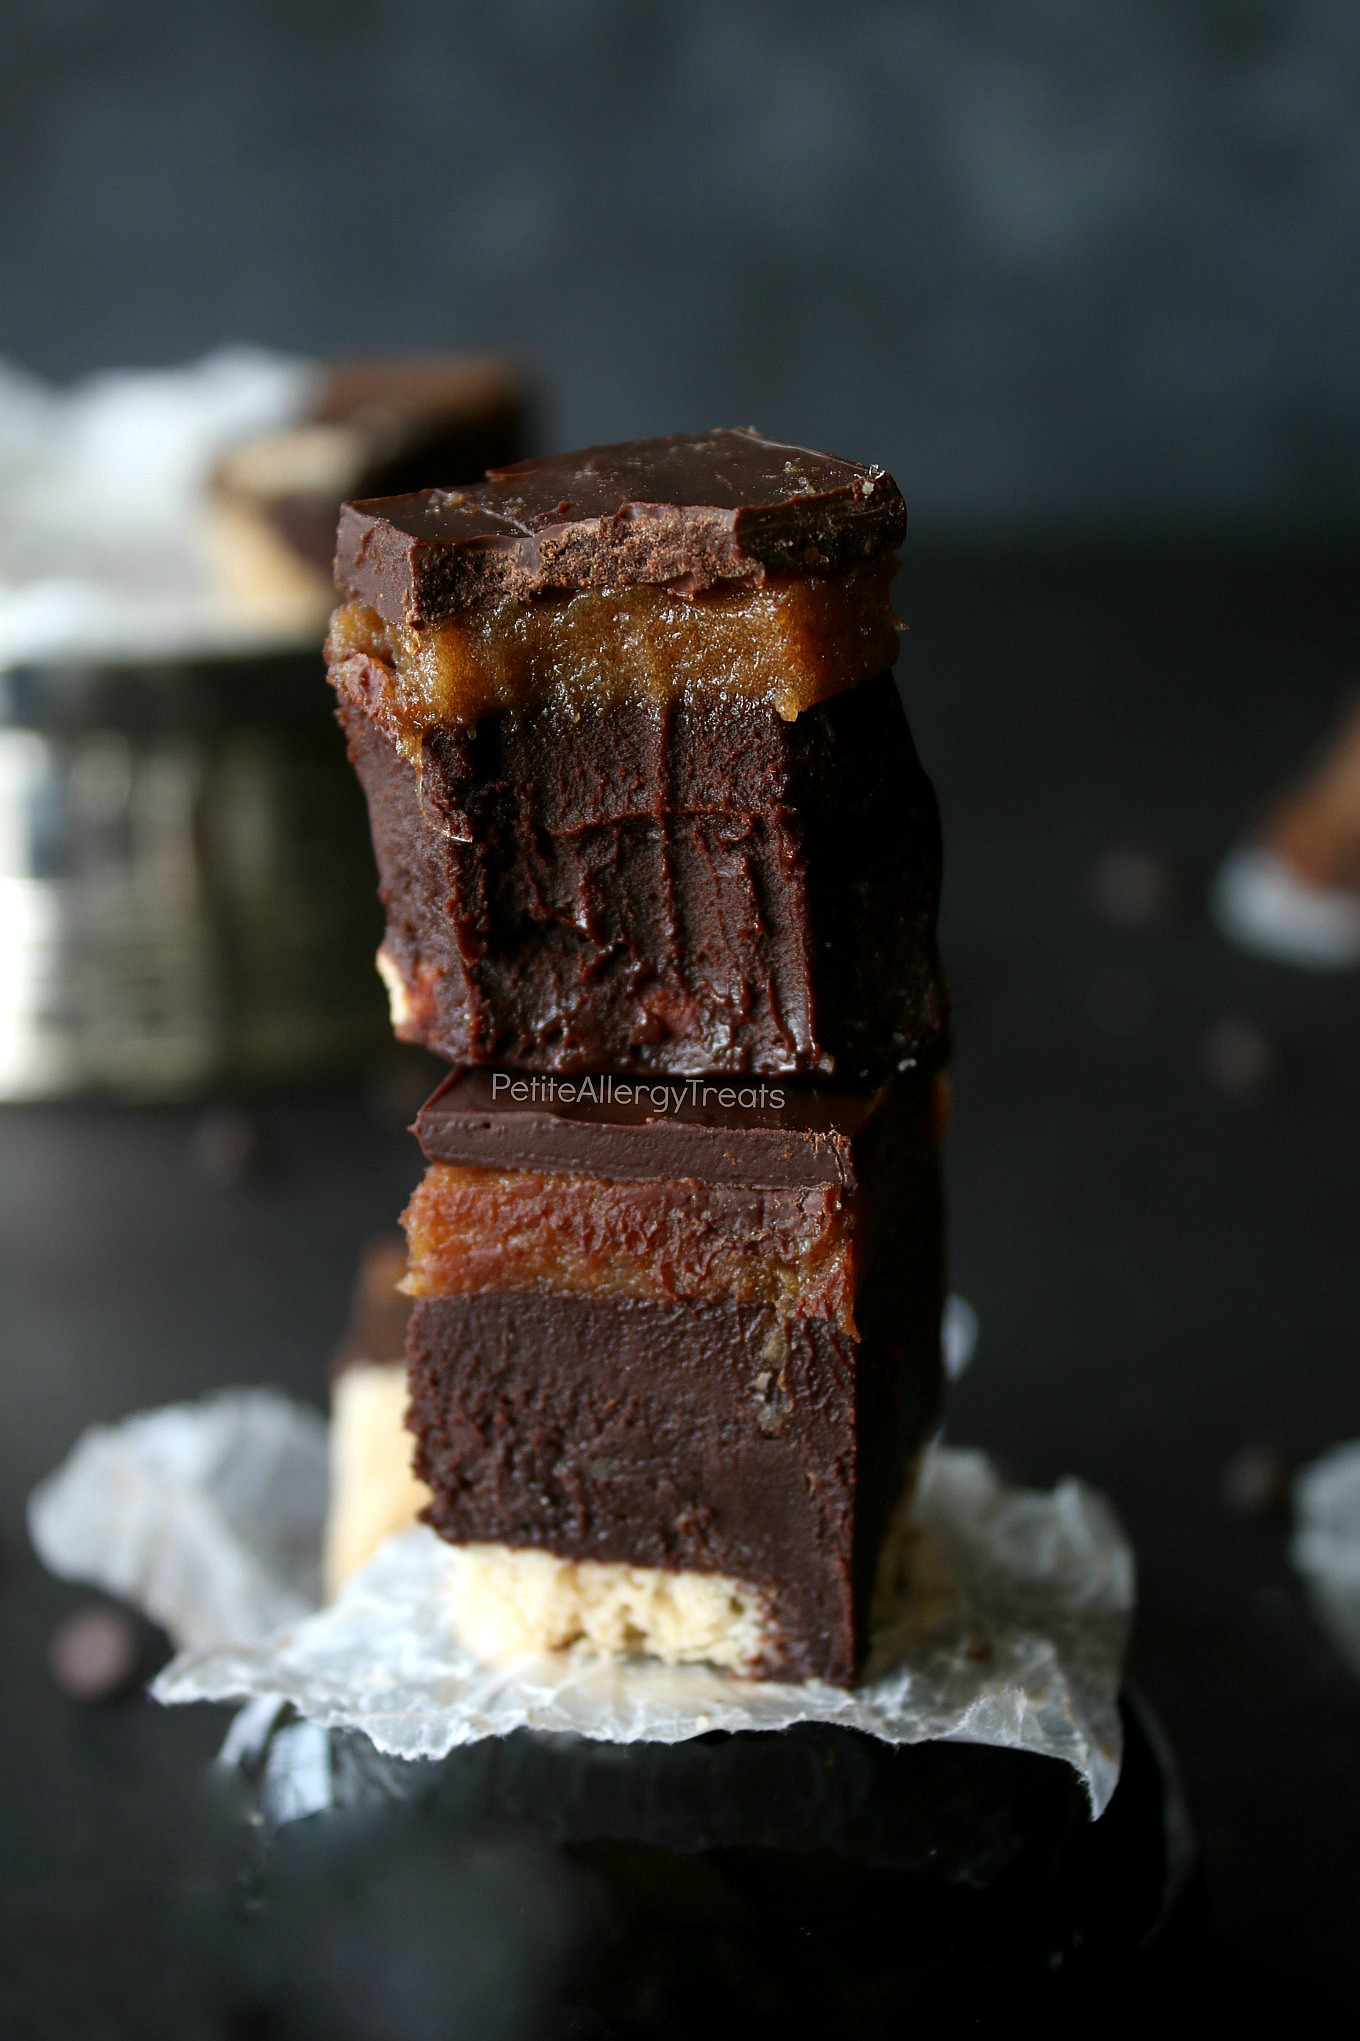 No bake Vegan Twix Fudge Bars Recipe (gluten free dairy free)- Healthier date caramel and oil free ganache fudge filling. Food Allergy friendly!